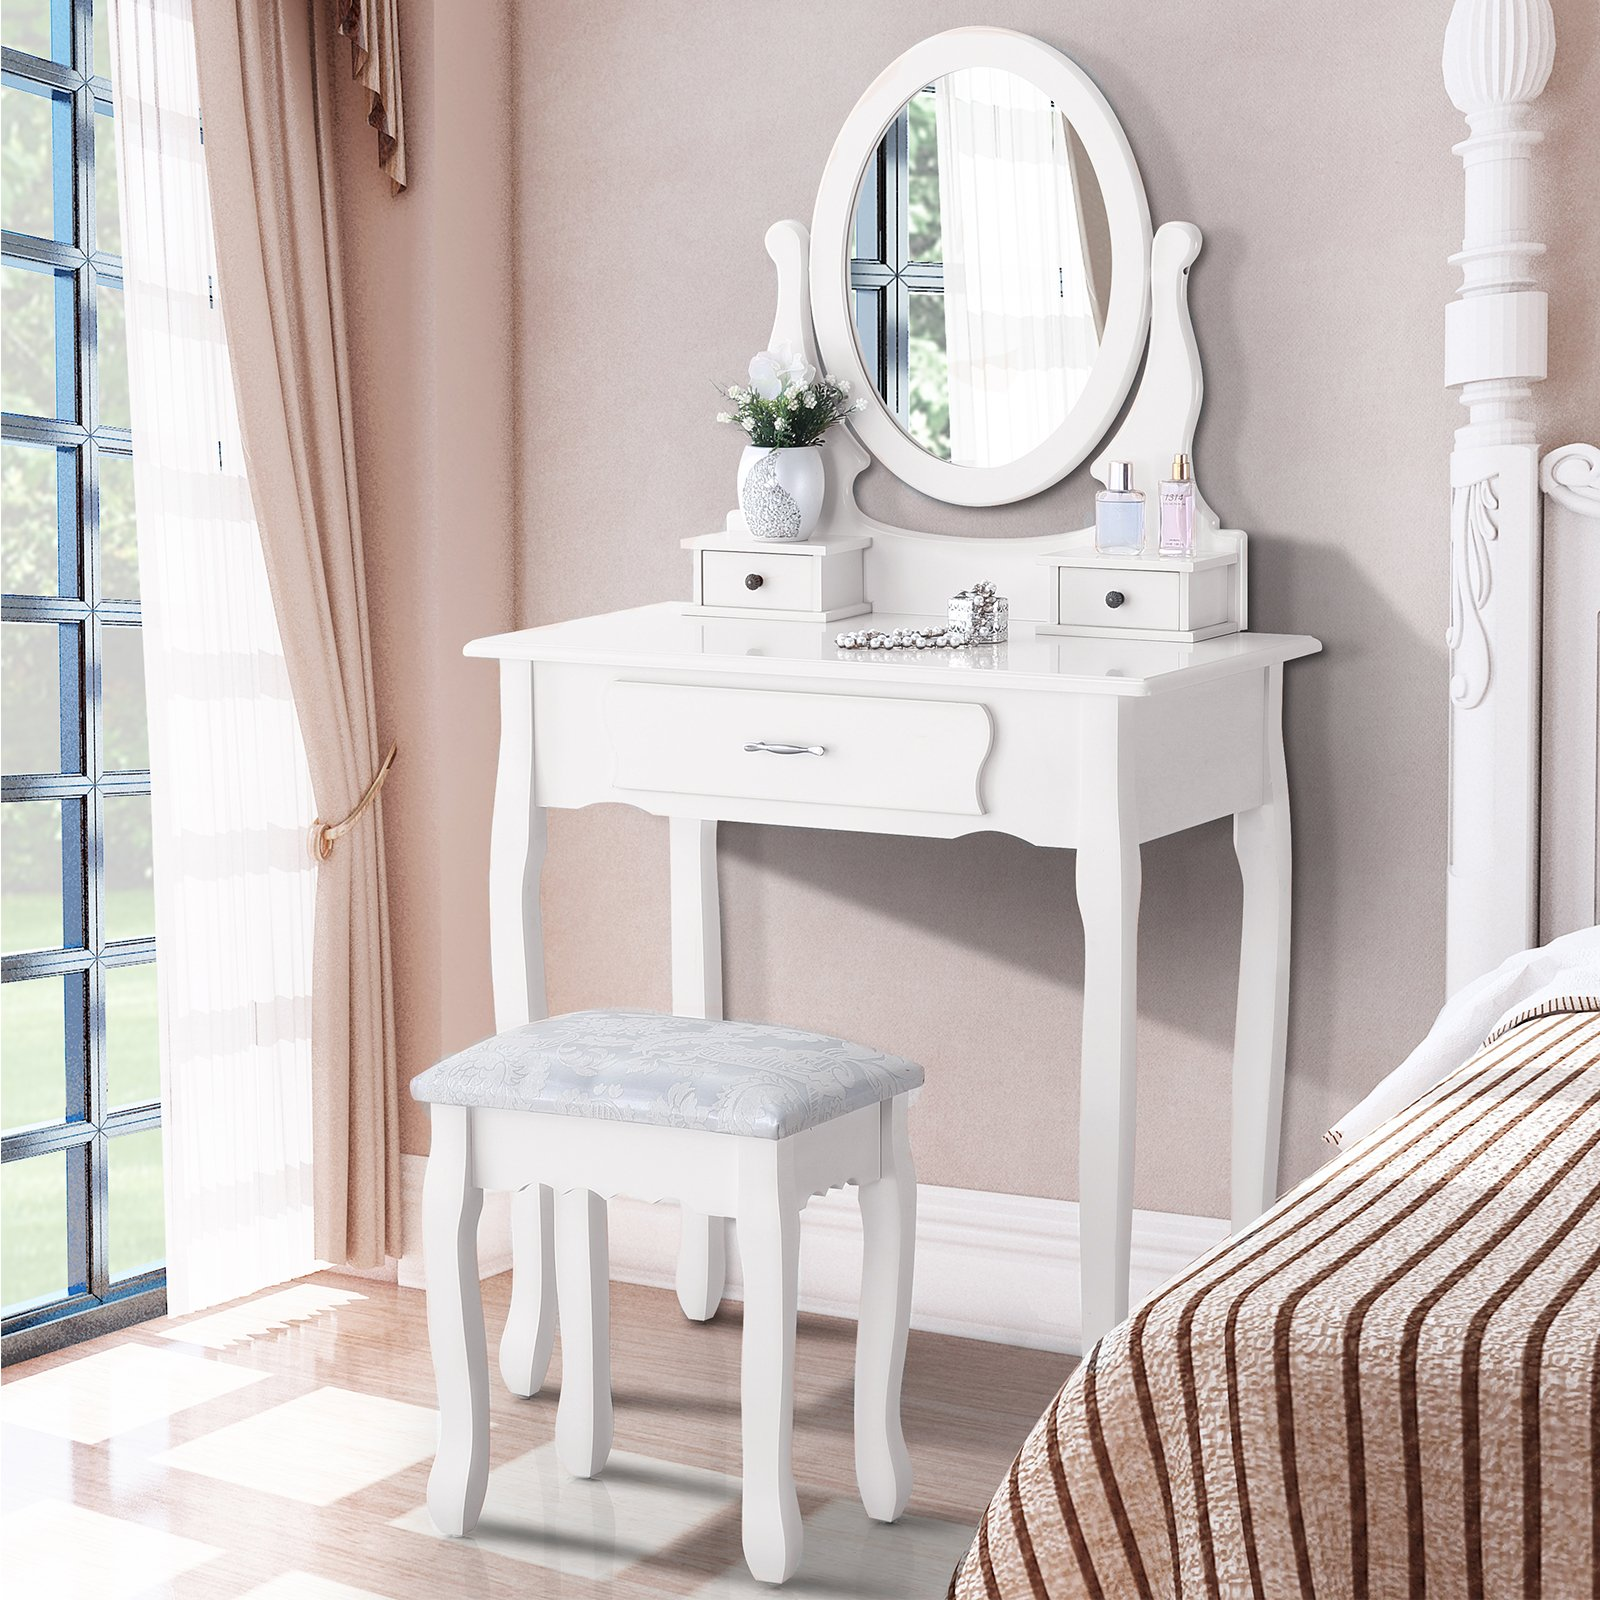 Mecor Makeup Vanity Sets with Oval Mirror, Wood Dressing Table w/Cushioned Stool ,3 Drawers Girls Women Bedroom Makeup Table White by mecor